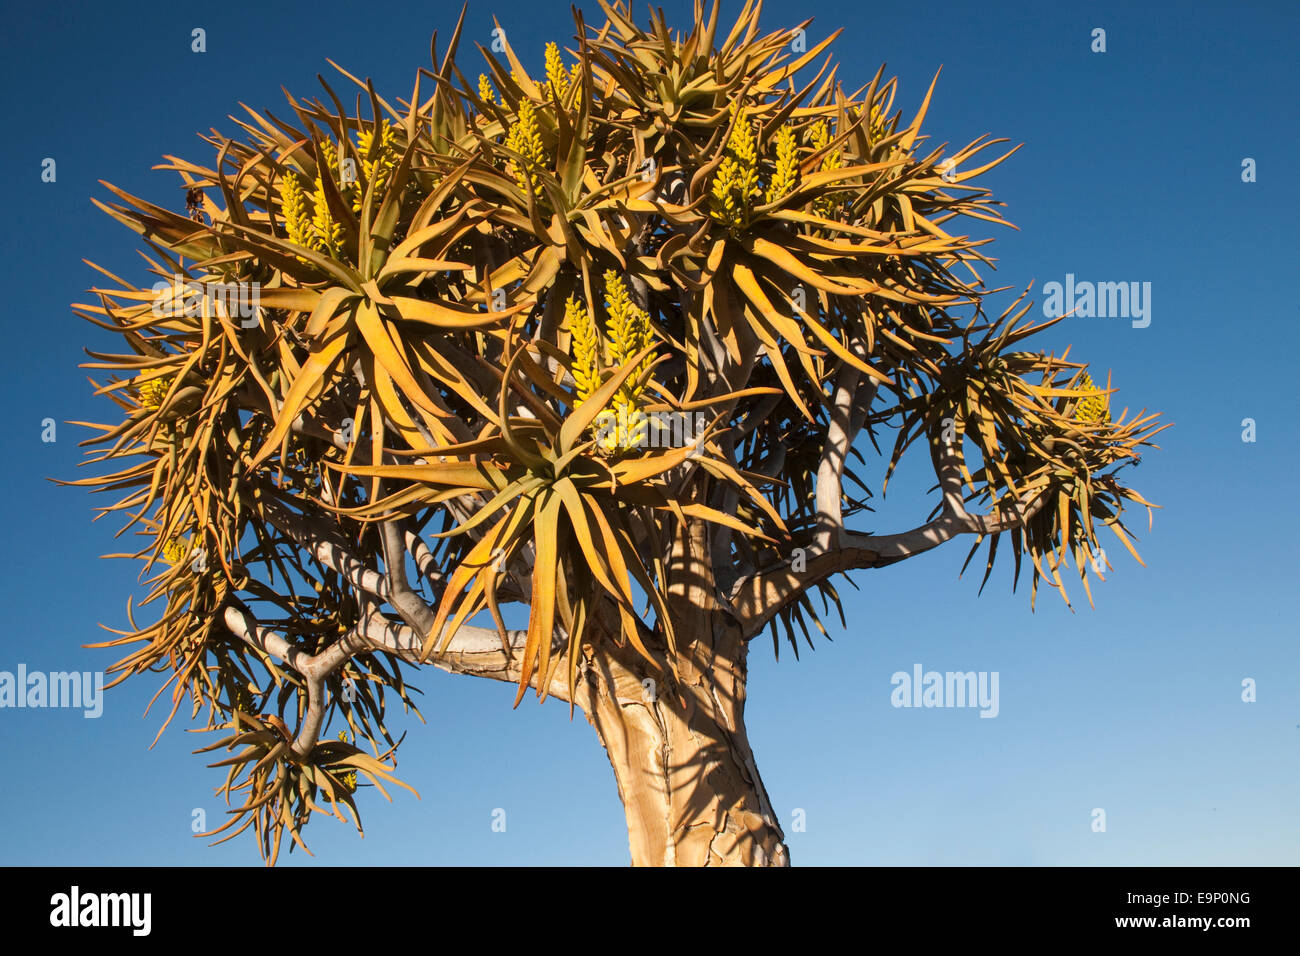 Quiver Tree in Flower, Aloe dichotoma, Quiver Tree Forest, Keetmanshoop, Namibie, Afrique du Sud Photo Stock